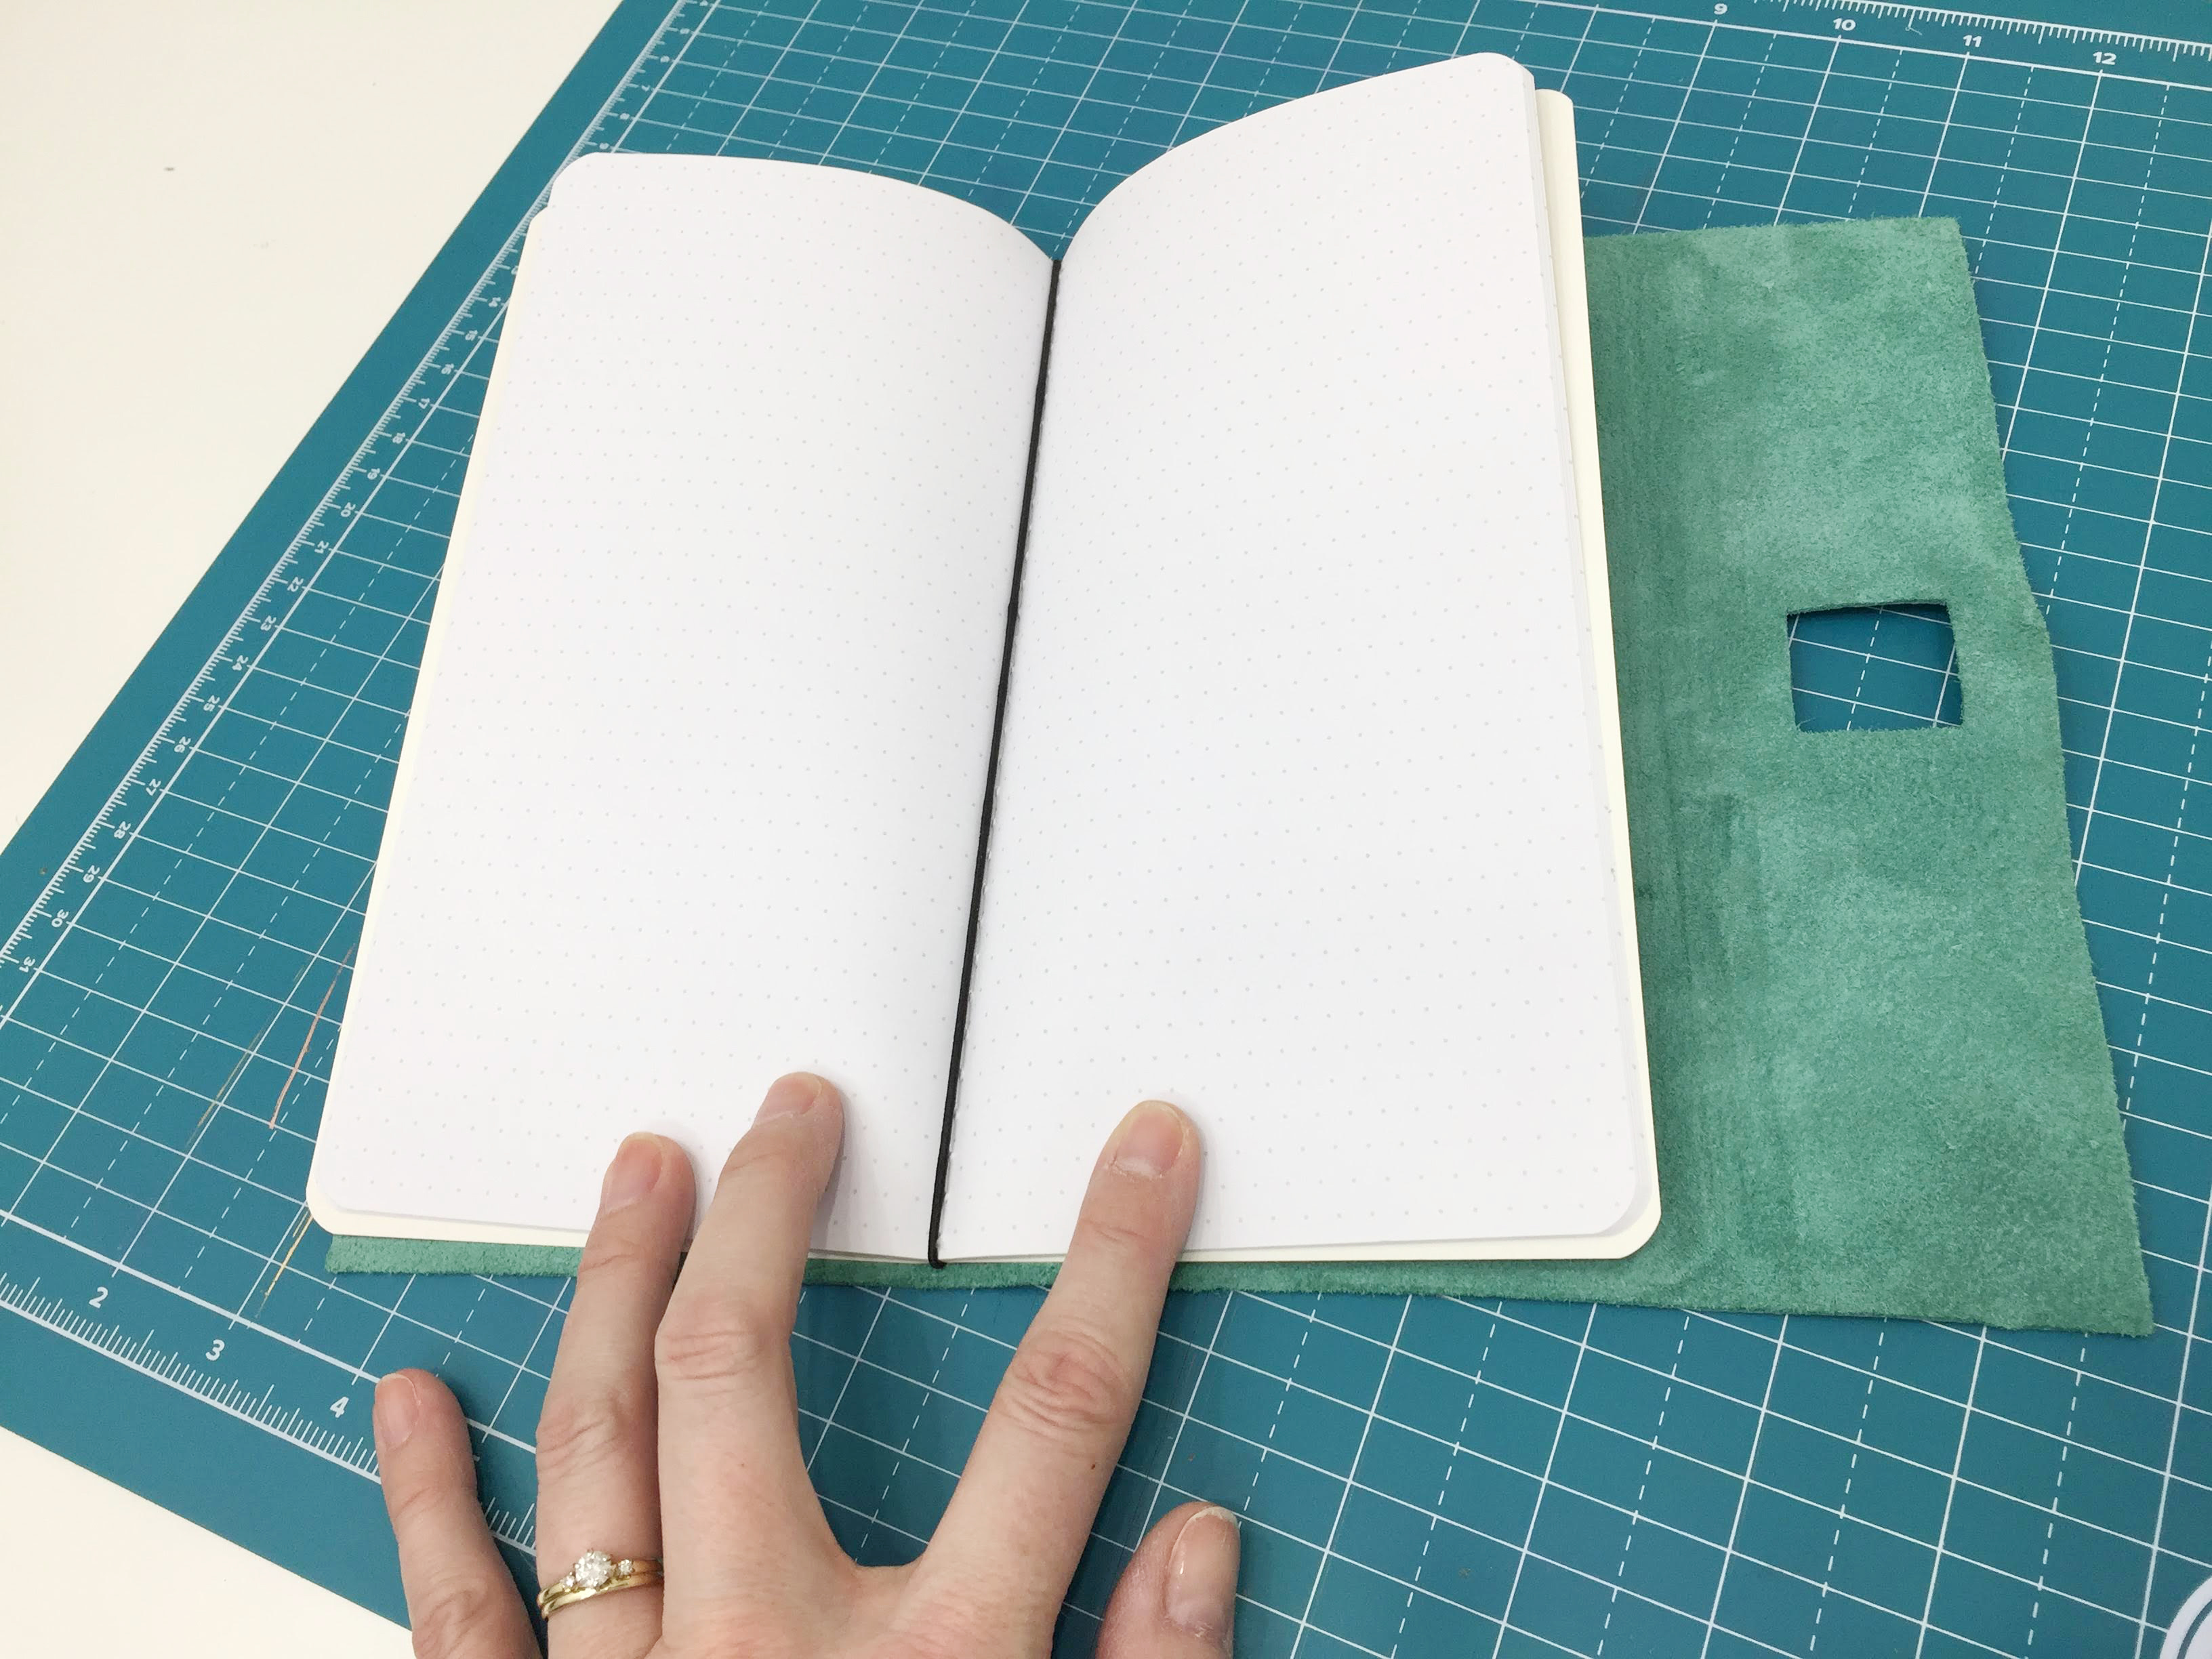 DIY Leather Traveler's Notebook Cover by Aly Dosdall featuring the We R Memory Keepers Foil Quill